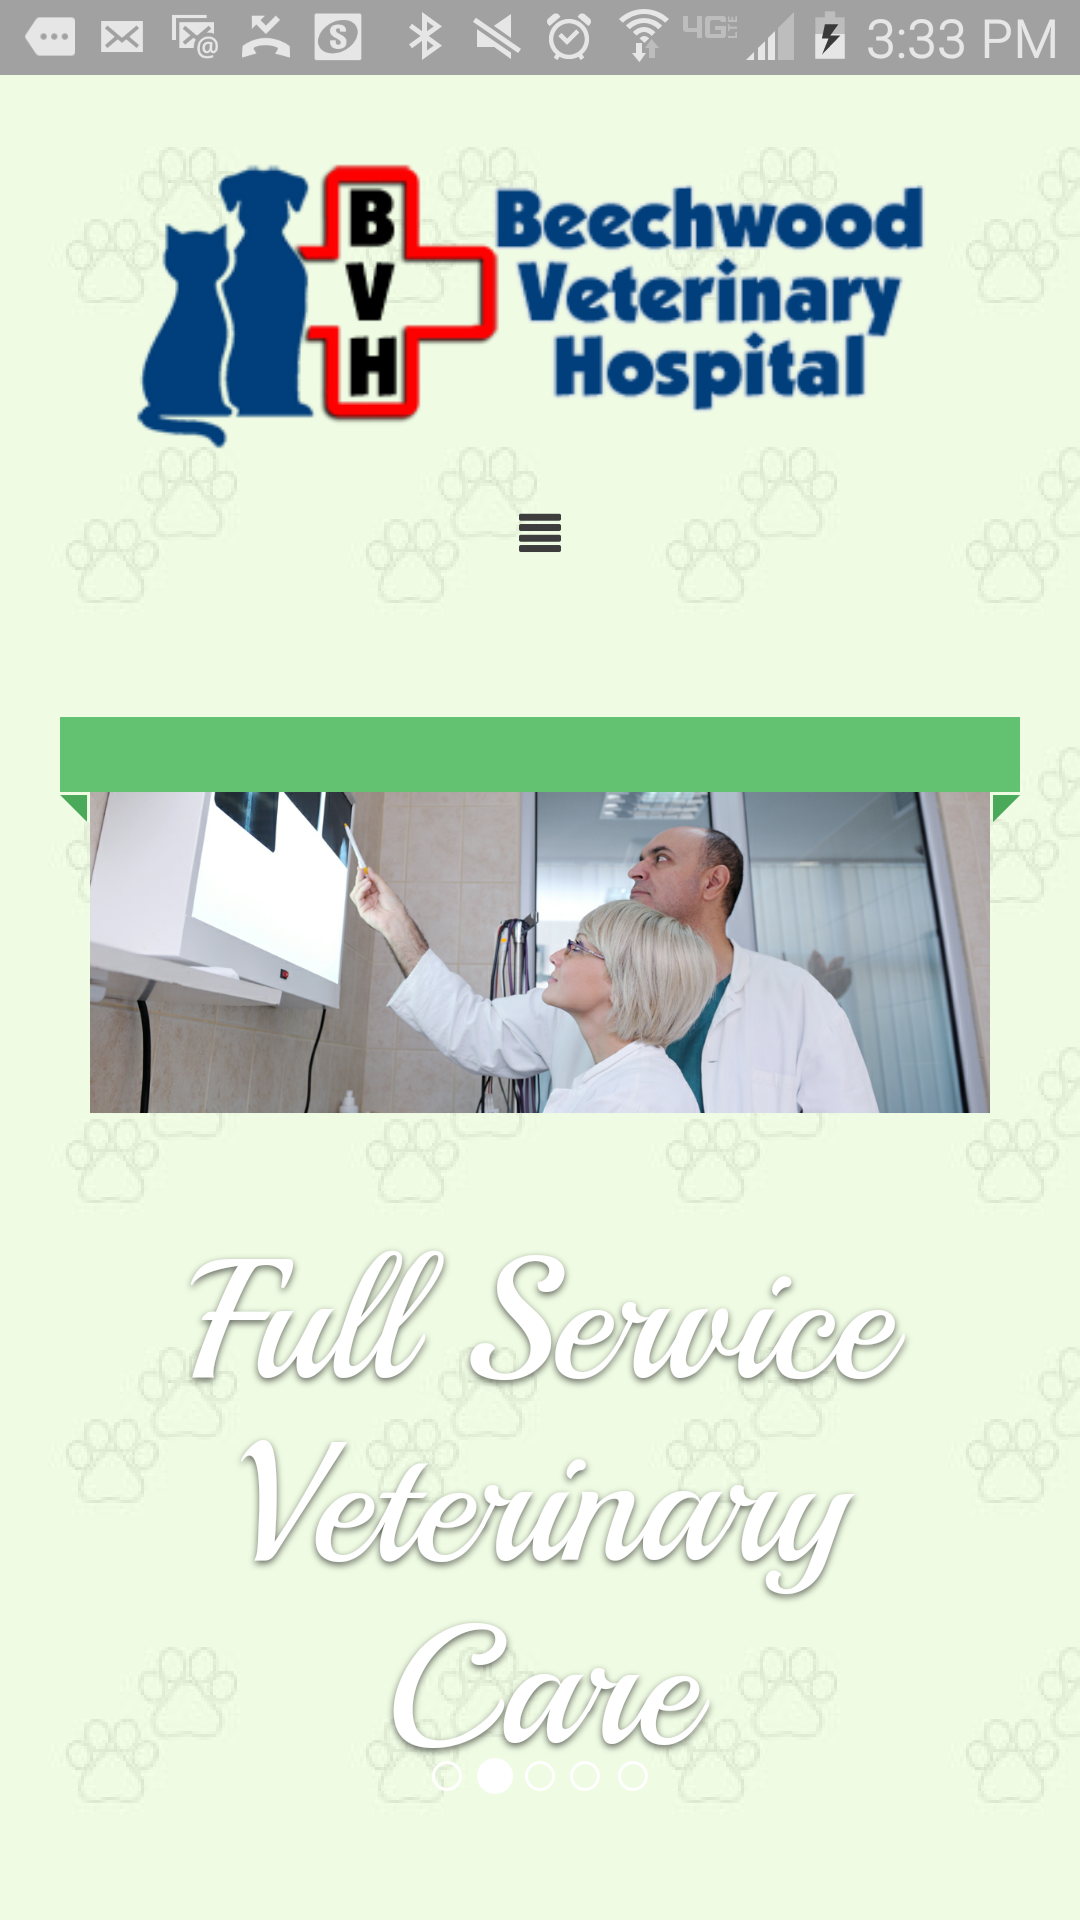 Beechwood Veterinary Home: Mobile View